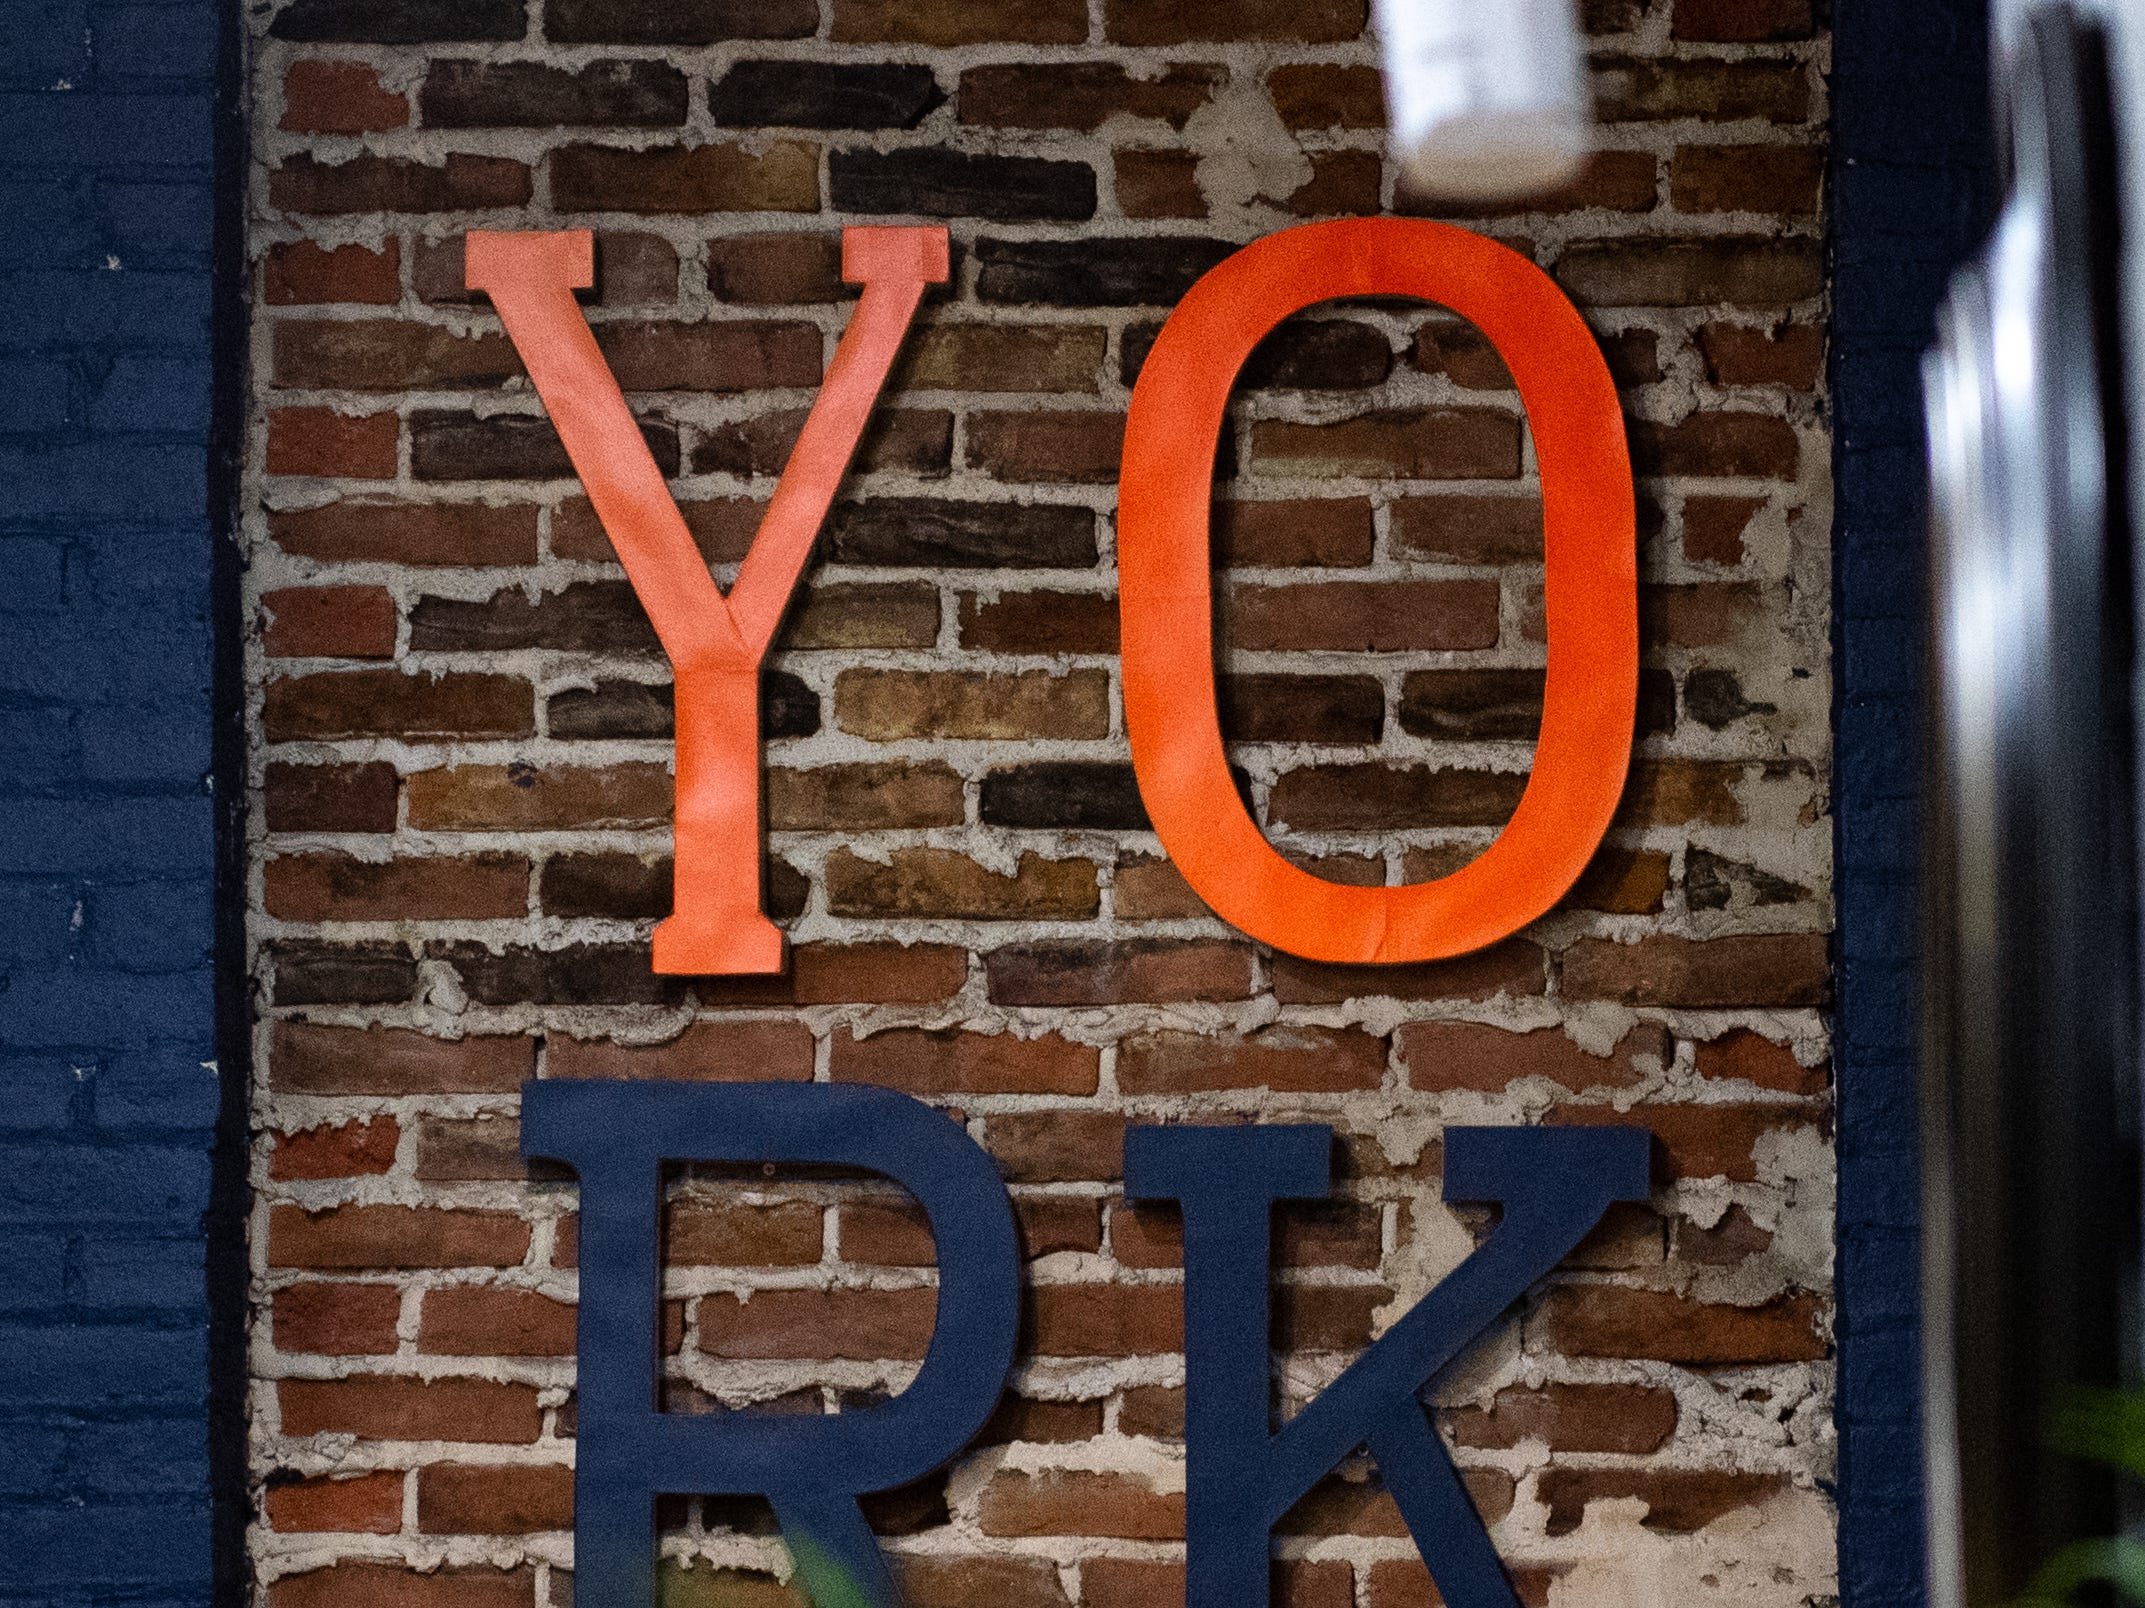 On the back wall of the LEXI Social Club sits a York sign, March 7, 2019.